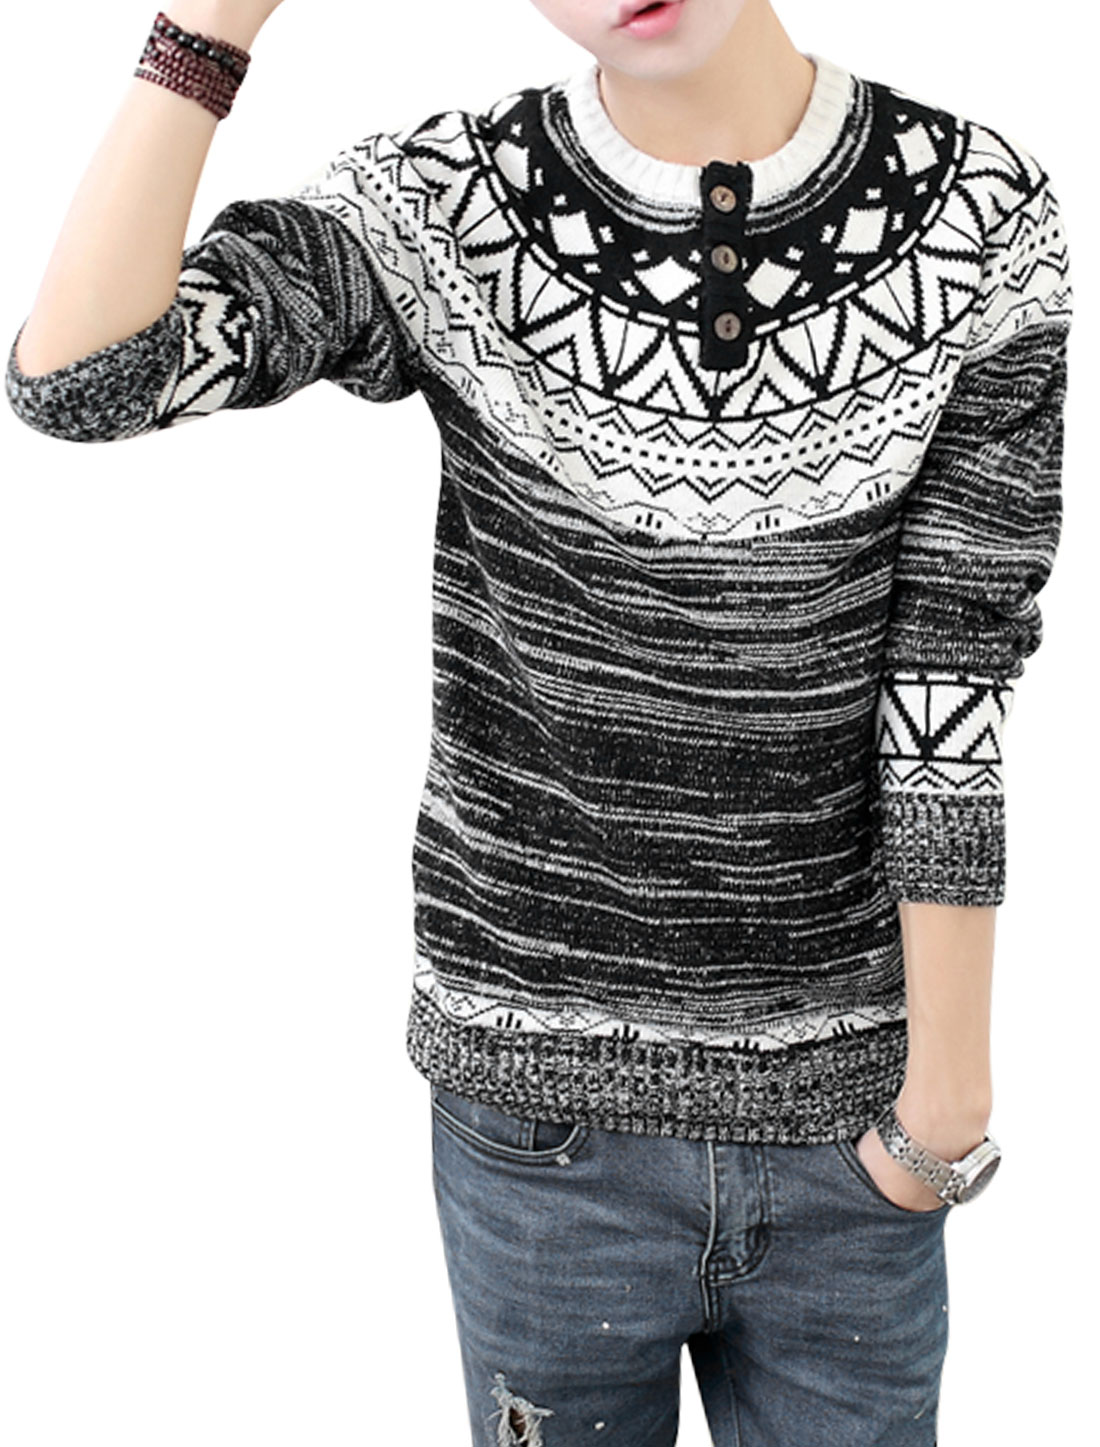 Men Zig-zag Argyle Pattern Round Neck Long Sleeve Sweater Black S